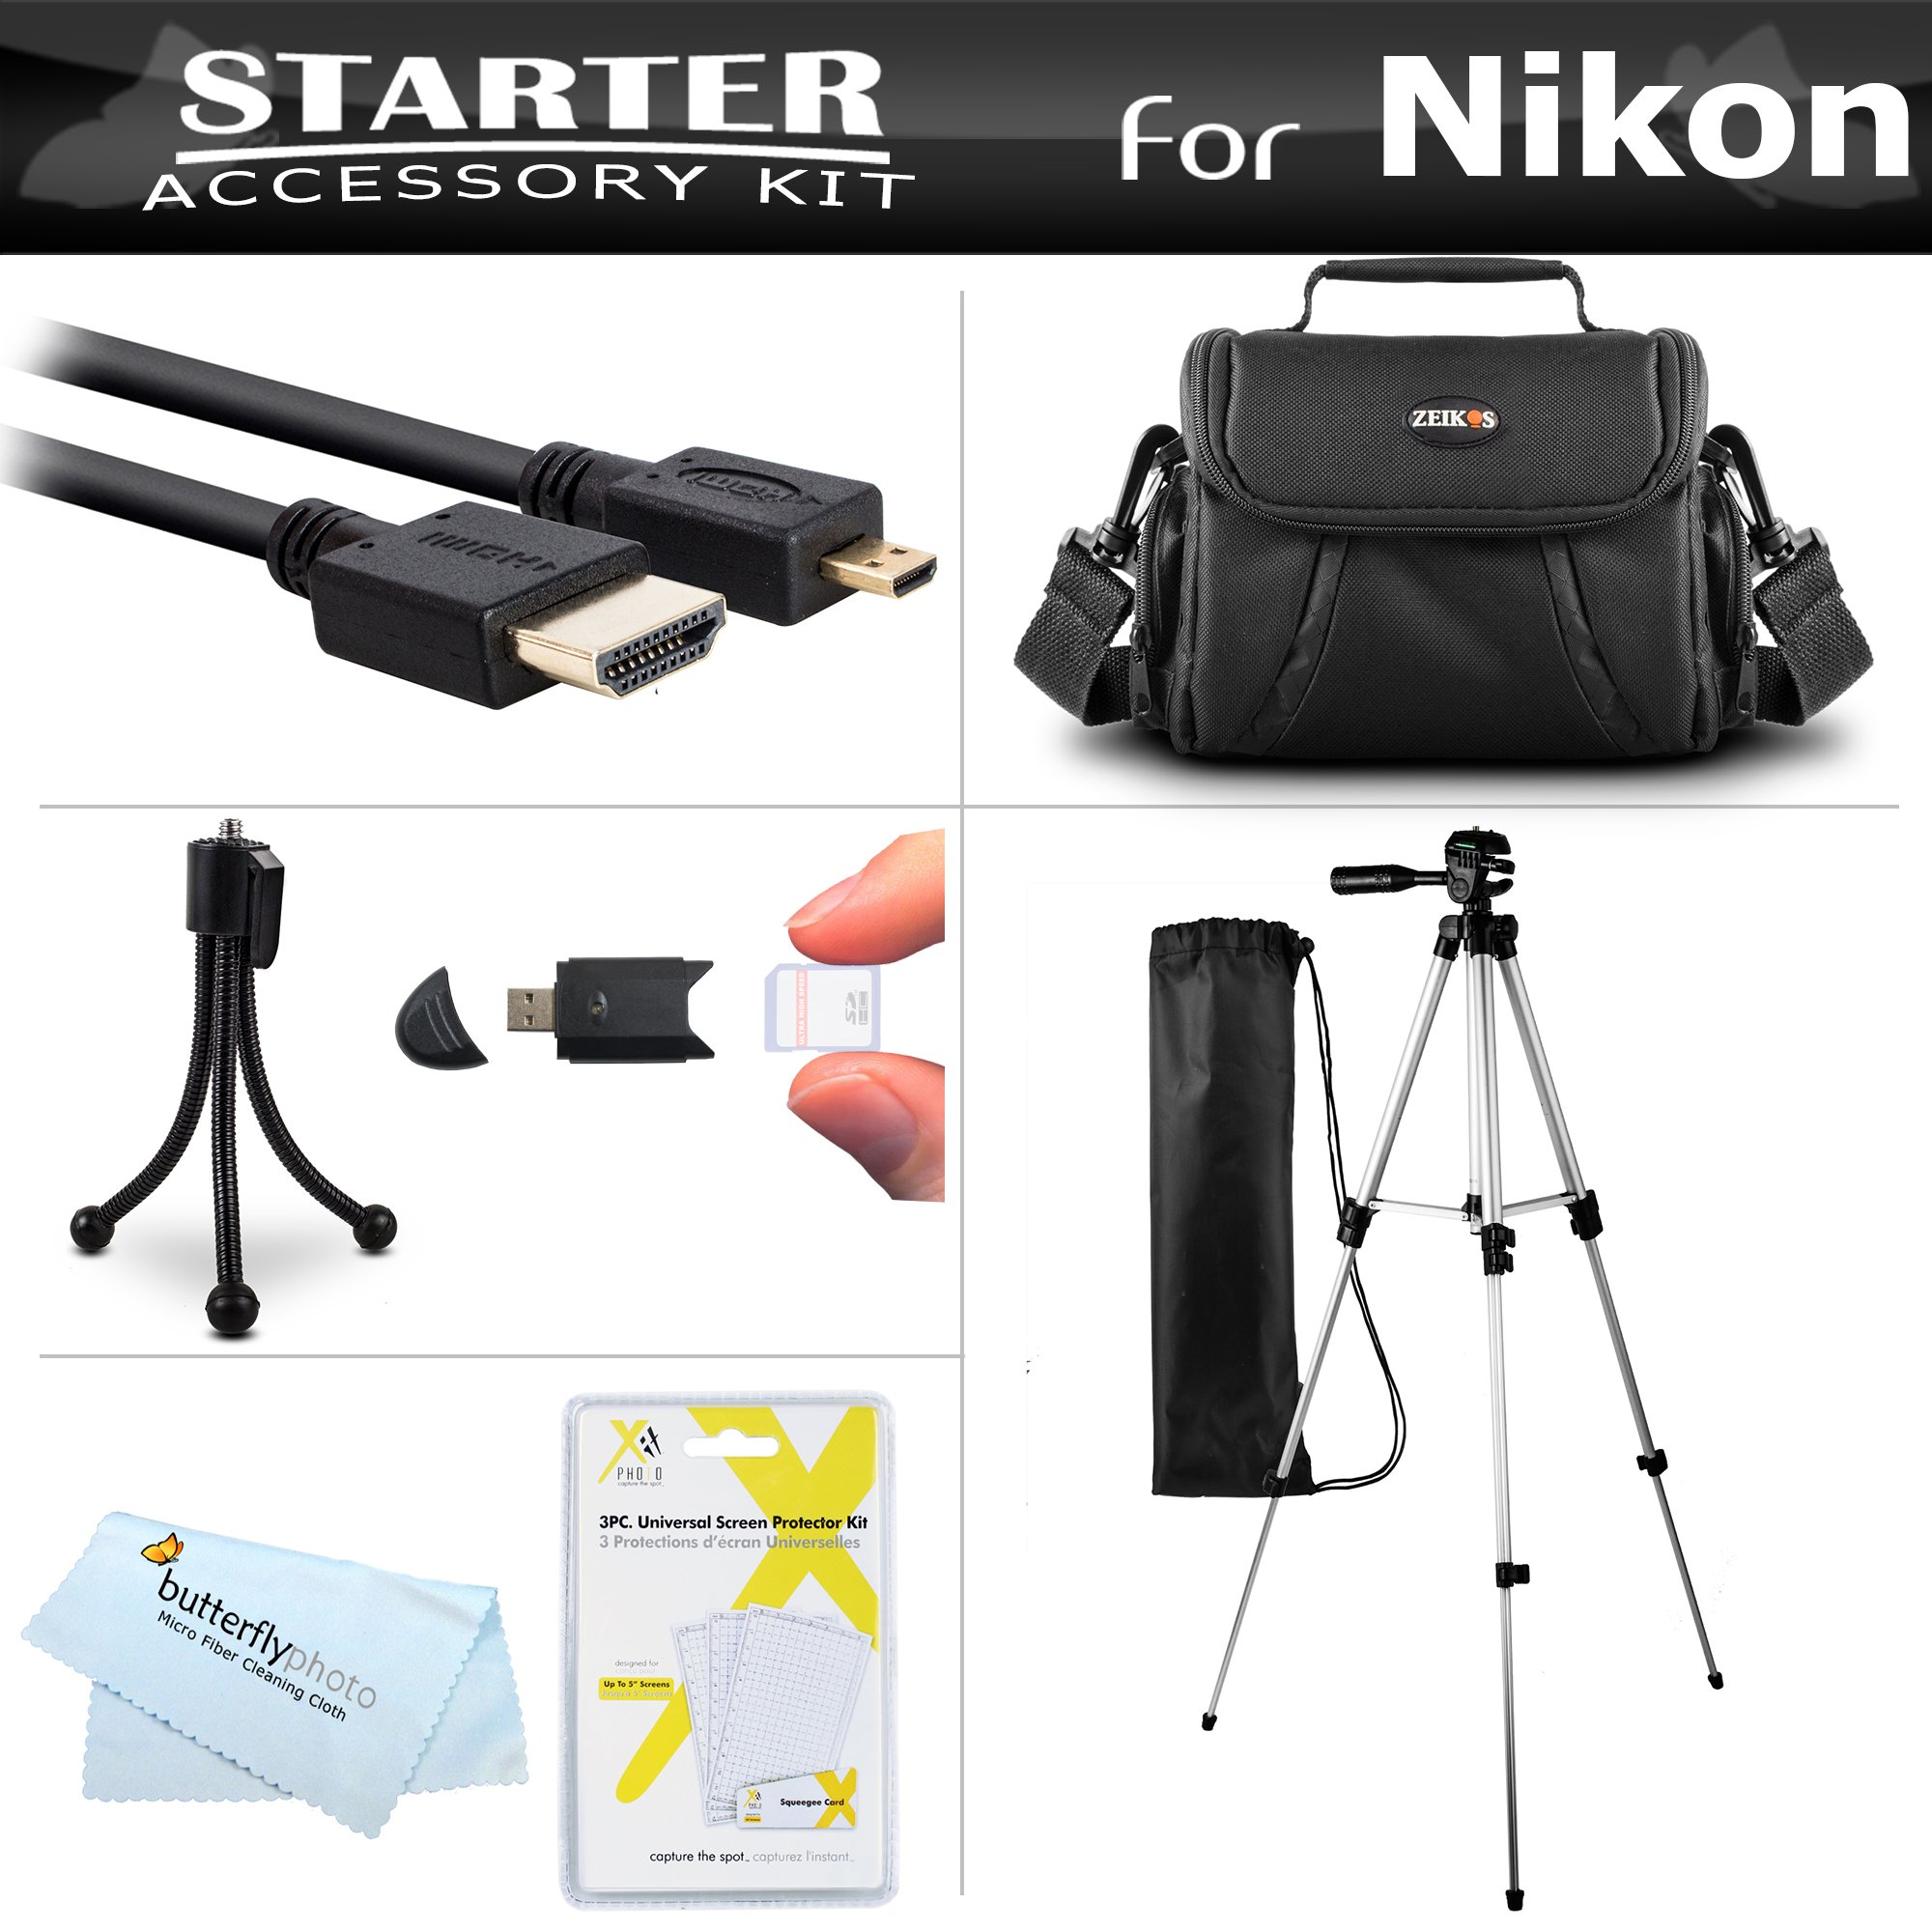 Starter Accessories Kit For Nikon COOLPIX B700, P900, P610, P600 Digital Camera Includes Deluxe Carrying Case + 50'' Tripod With Case + Micro HDMI Cable + USB Card Reader + LCD Screen Protectors + More